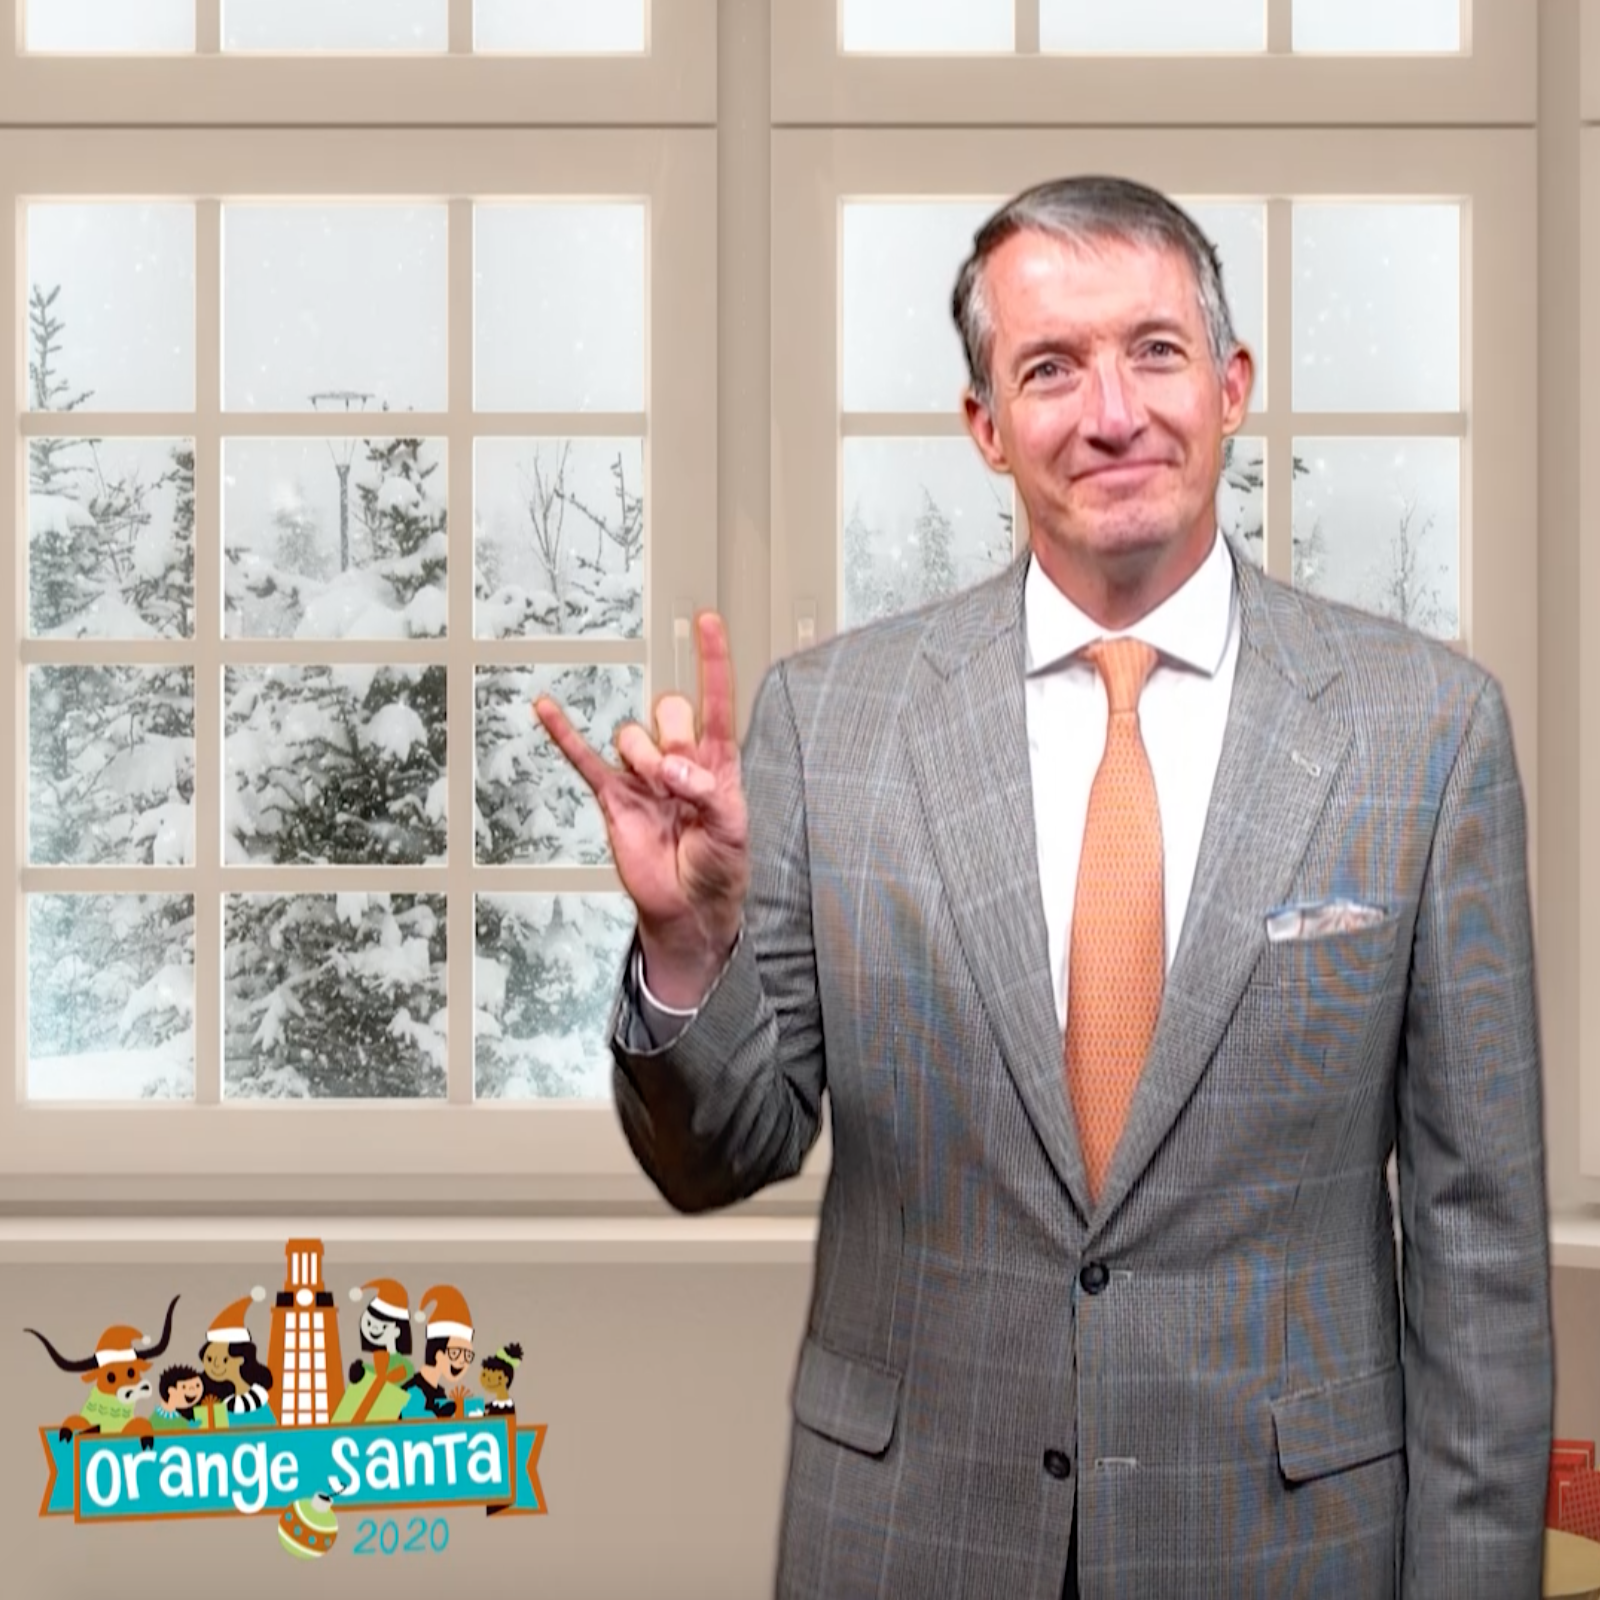 Jay Hartzell giving hook 'em horns hand gesture with snowy background behind him and Orange Santa logo in corner